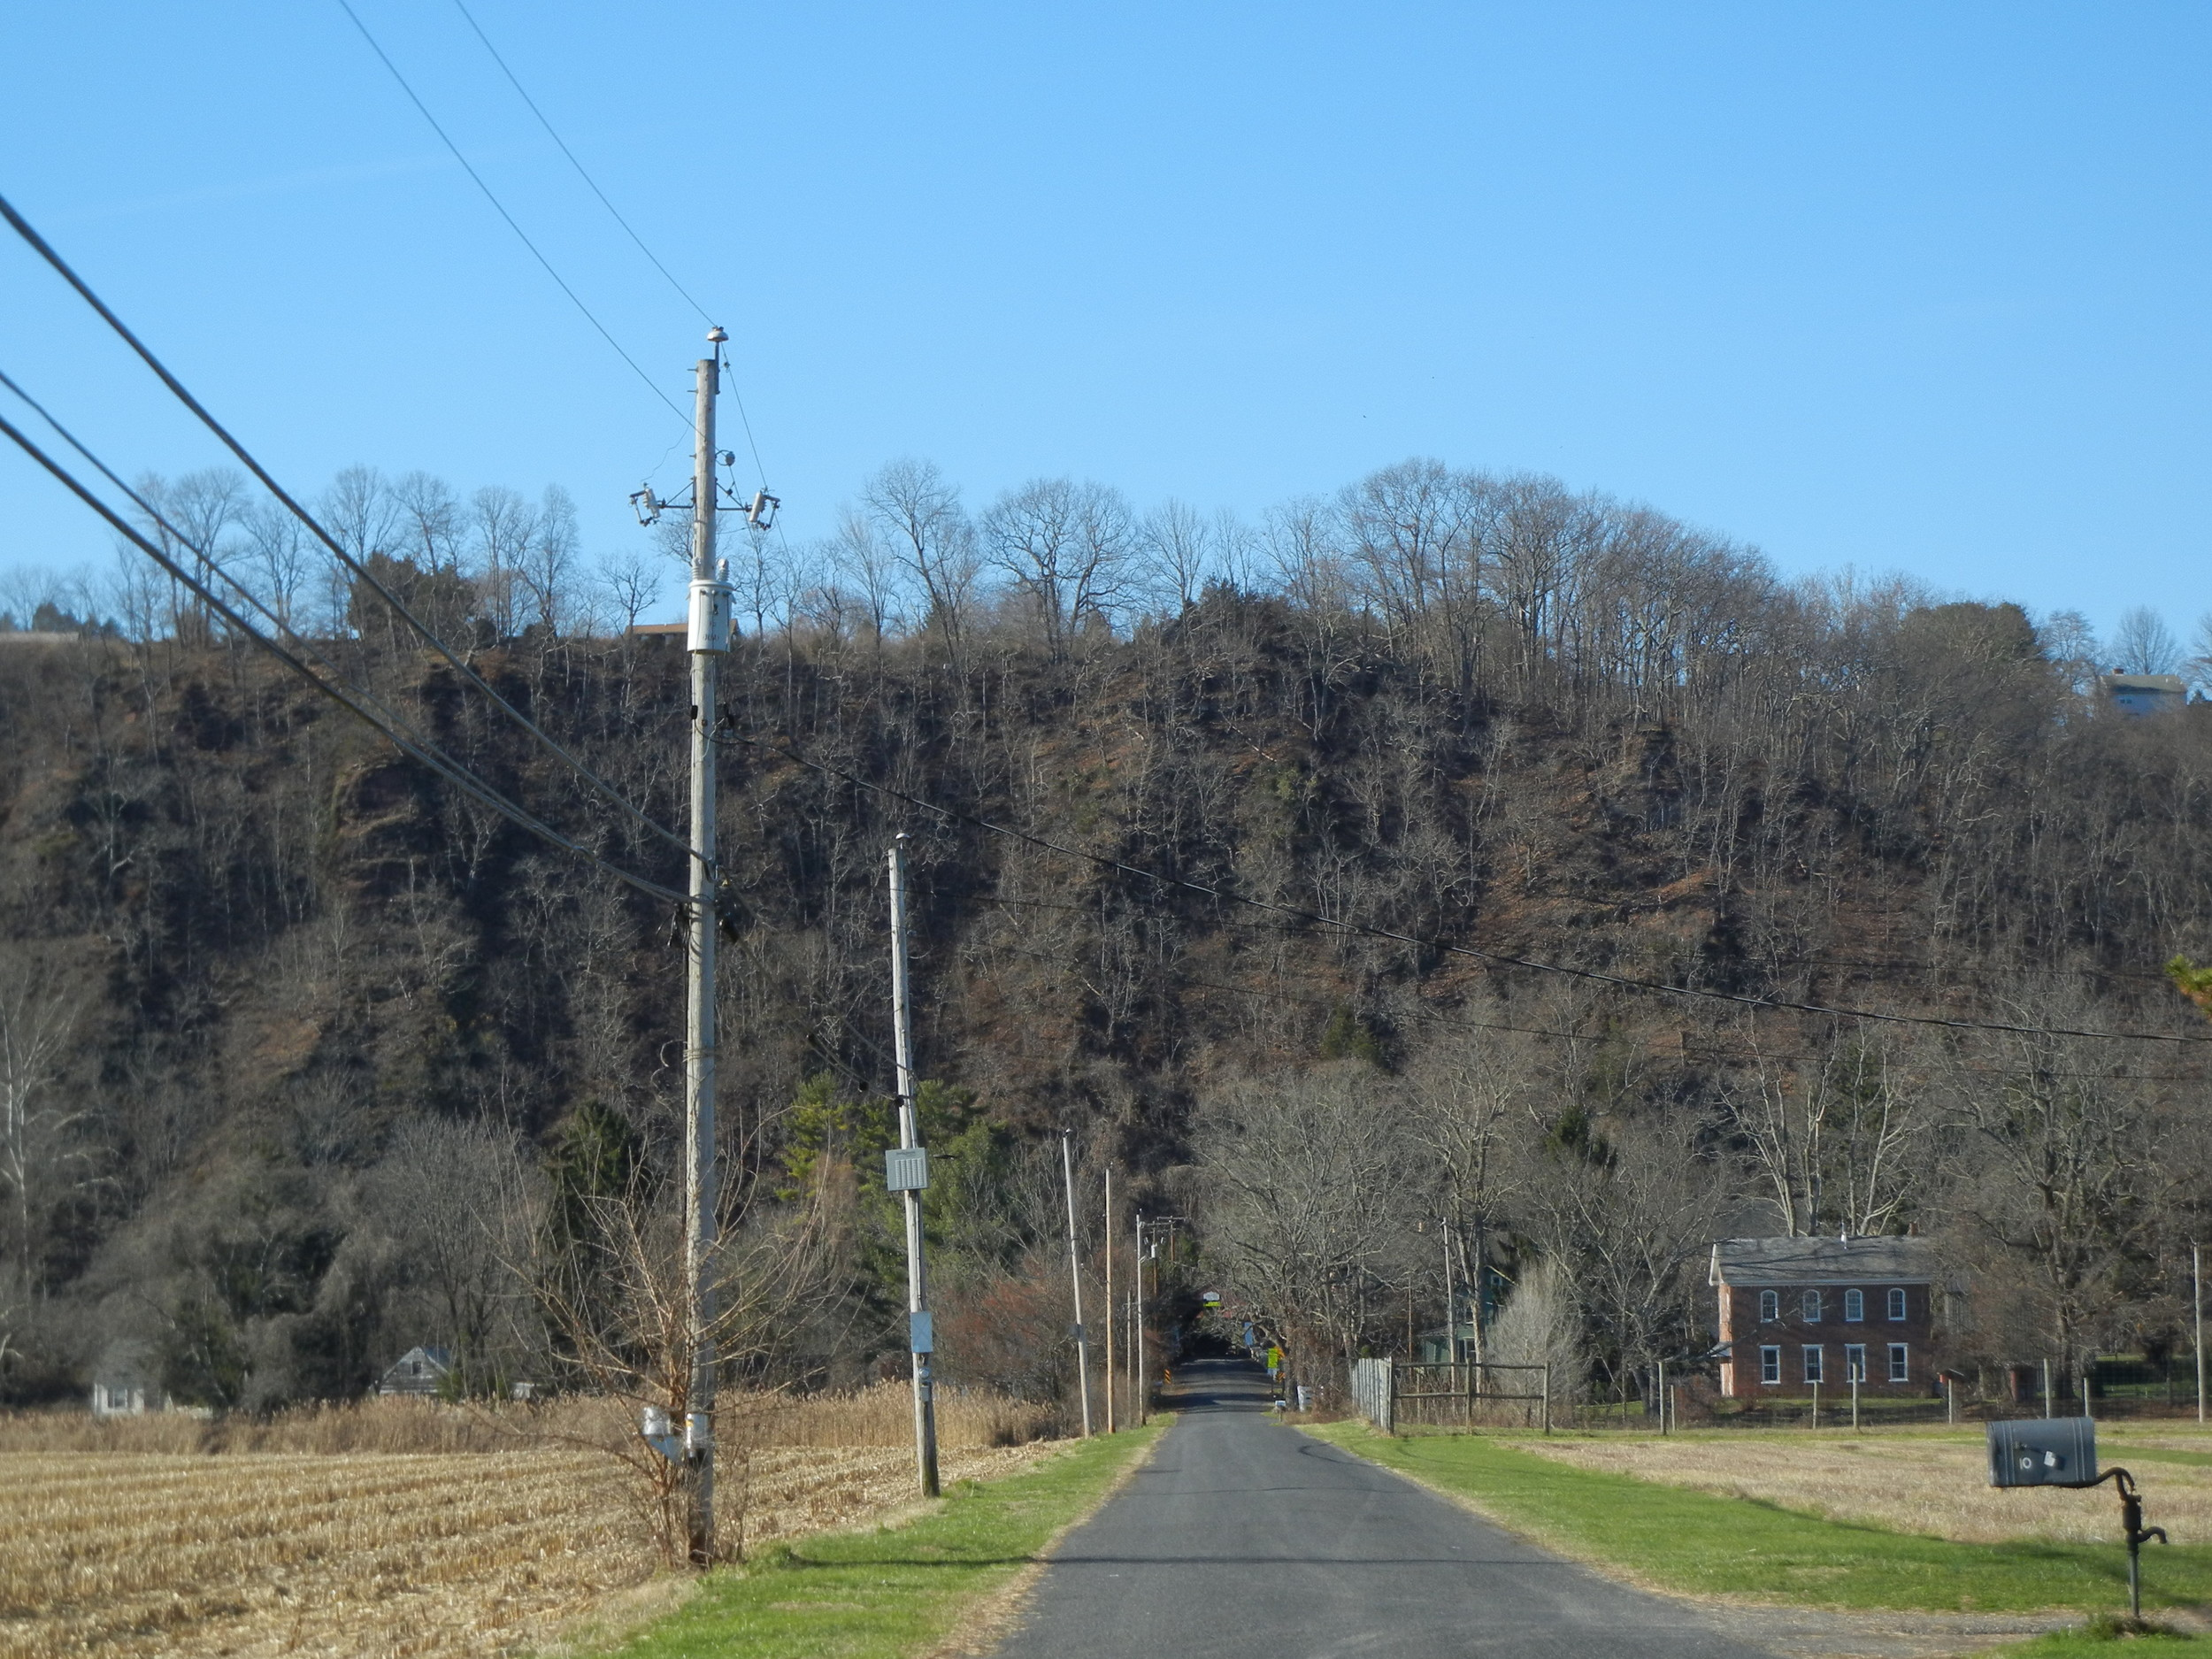 The route to the top of this bluff takes one up Uhlerstown Road.